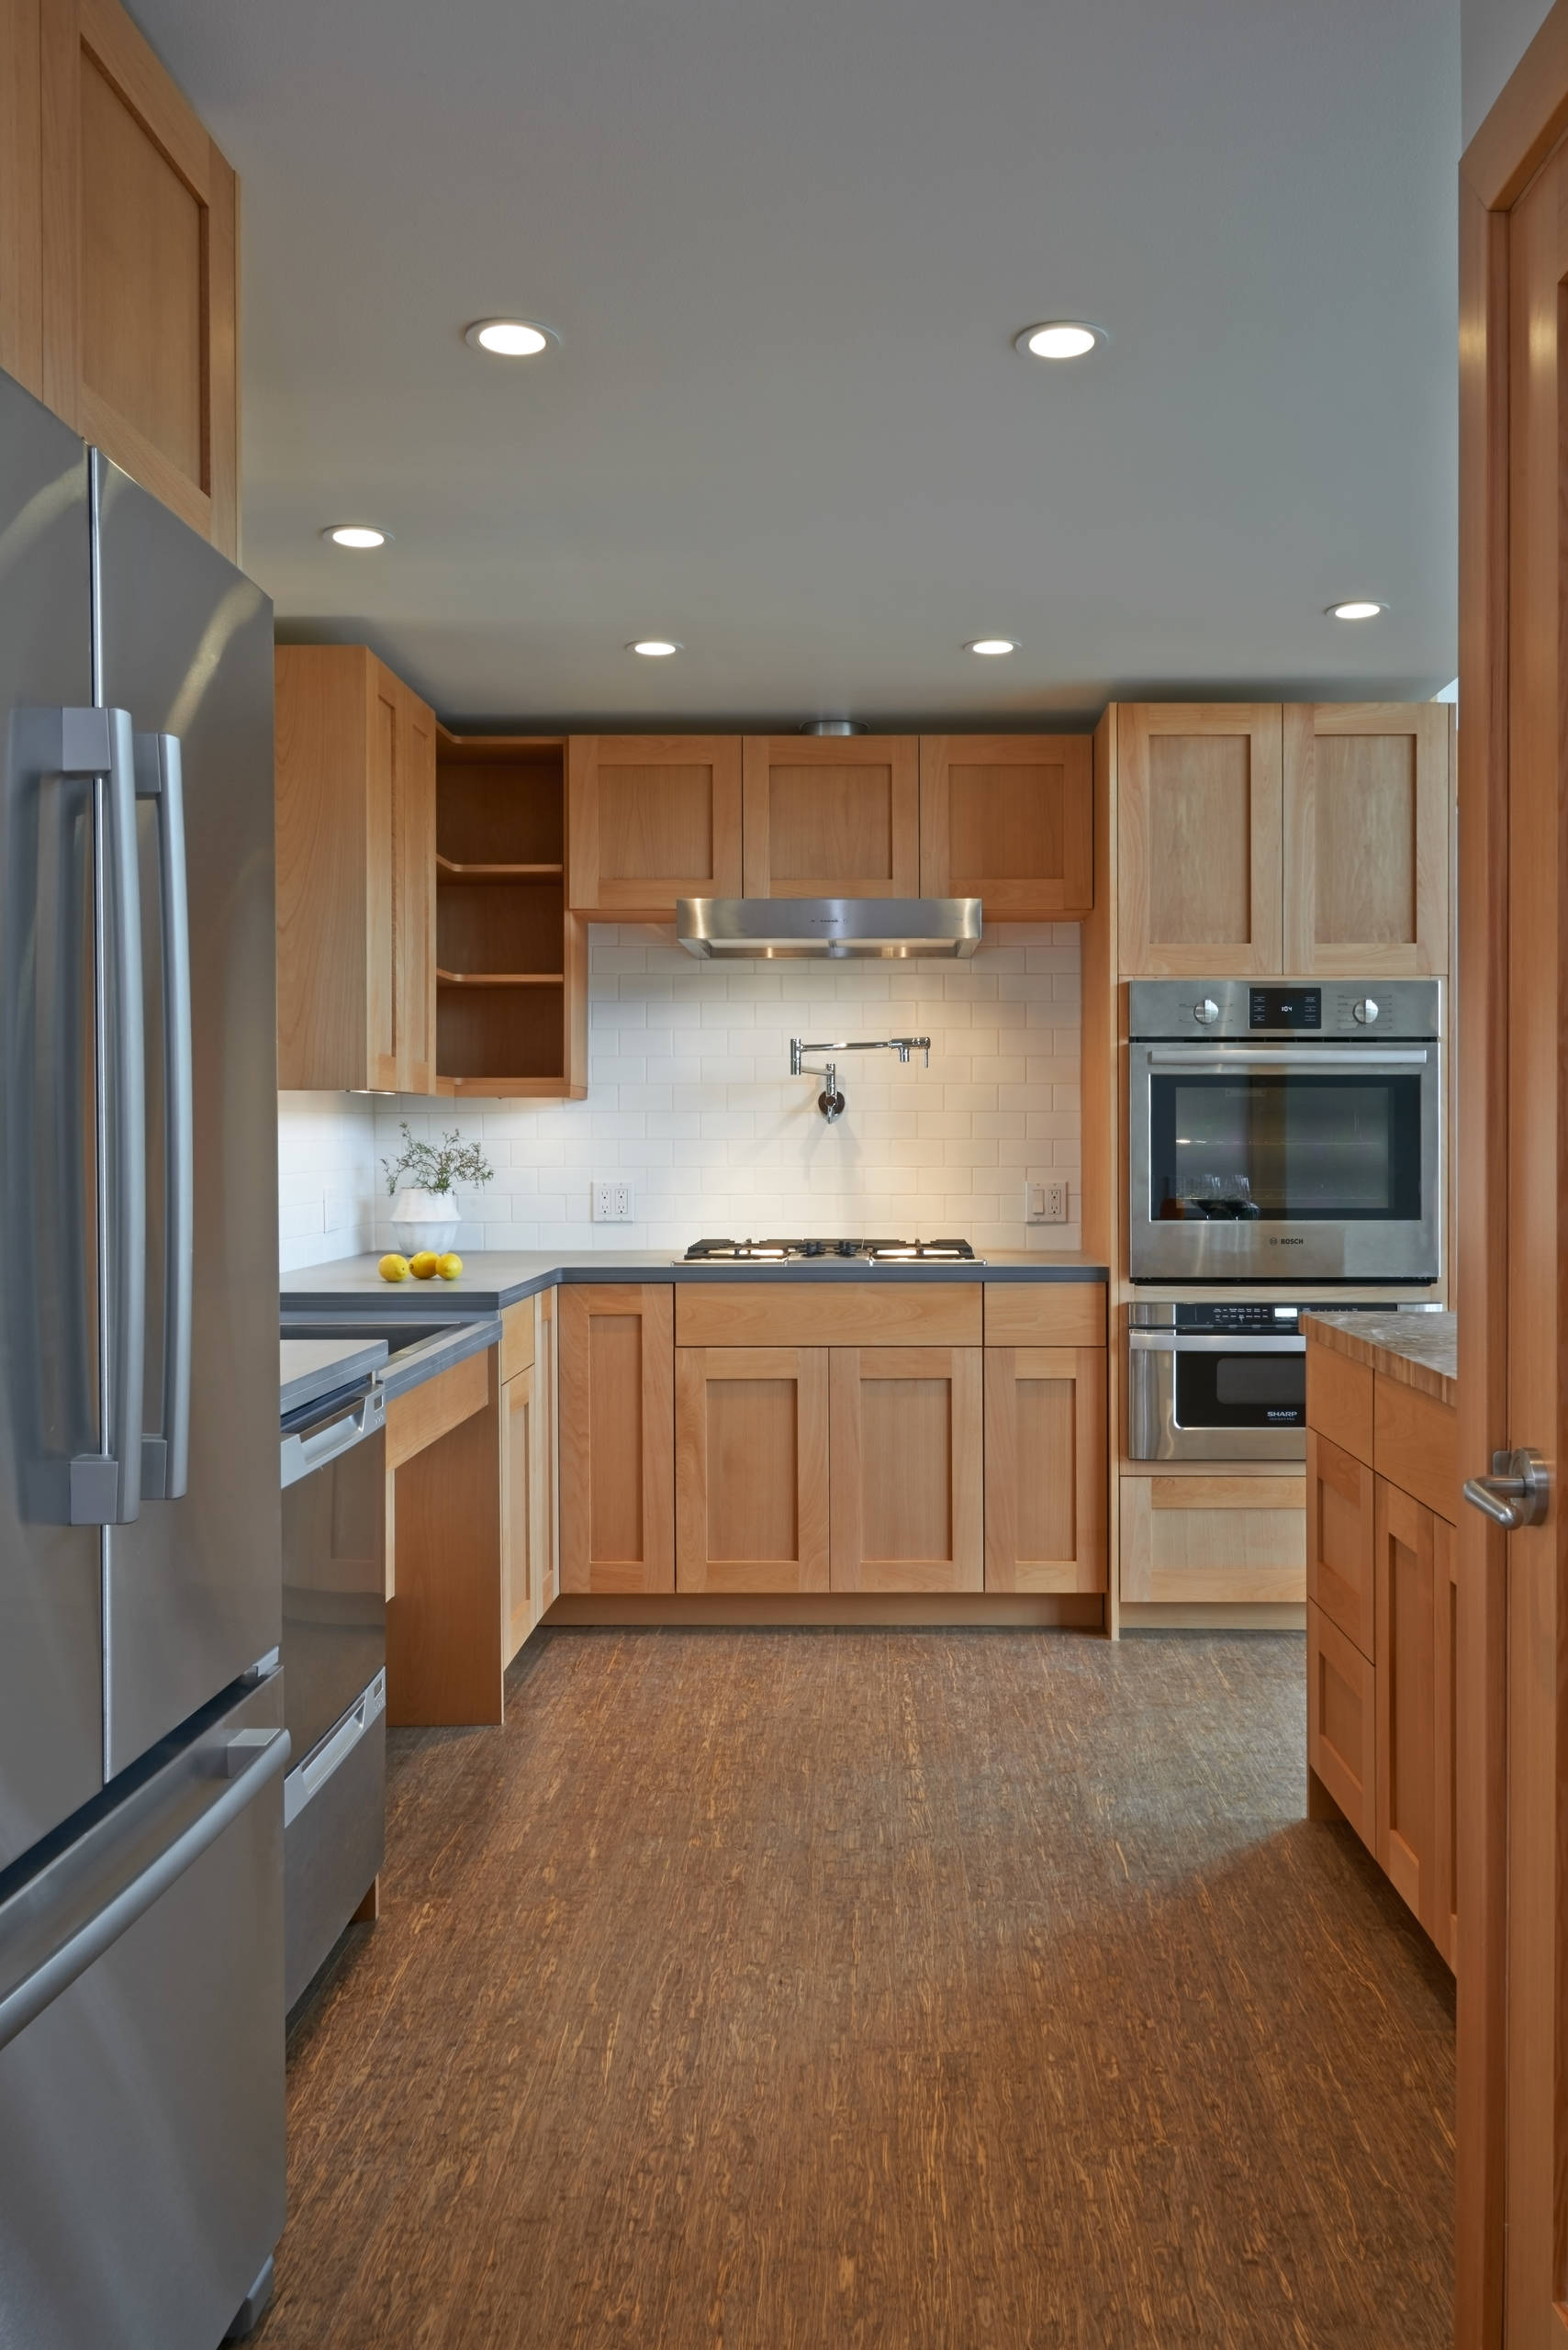 9 Beautiful Kitchen with Light Wood Cabinets and Subway Tile ...